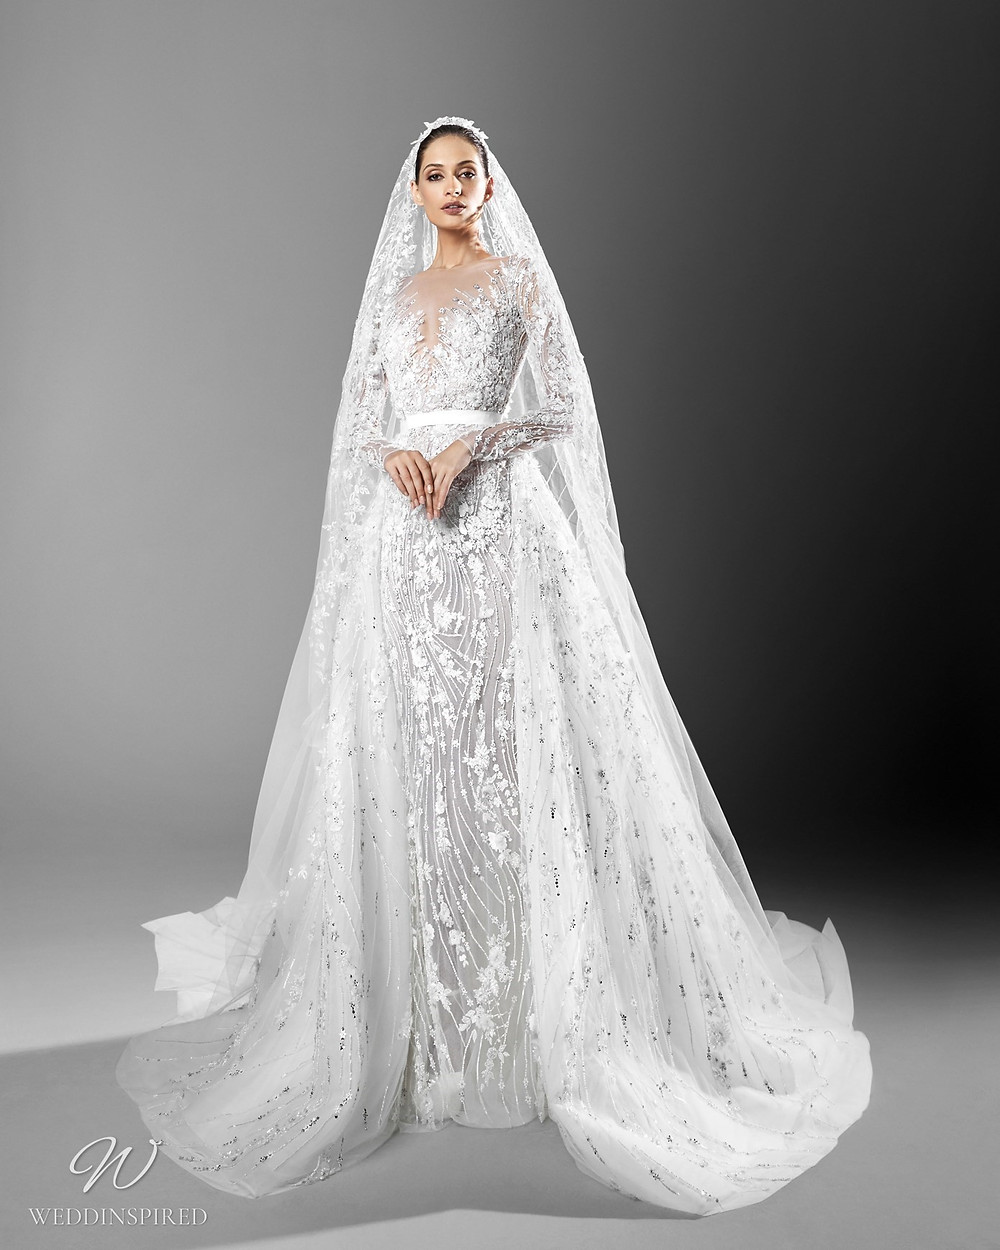 A Zuhair Murad crystal embellished mermaid wedding dress with a detachable skirt and veil